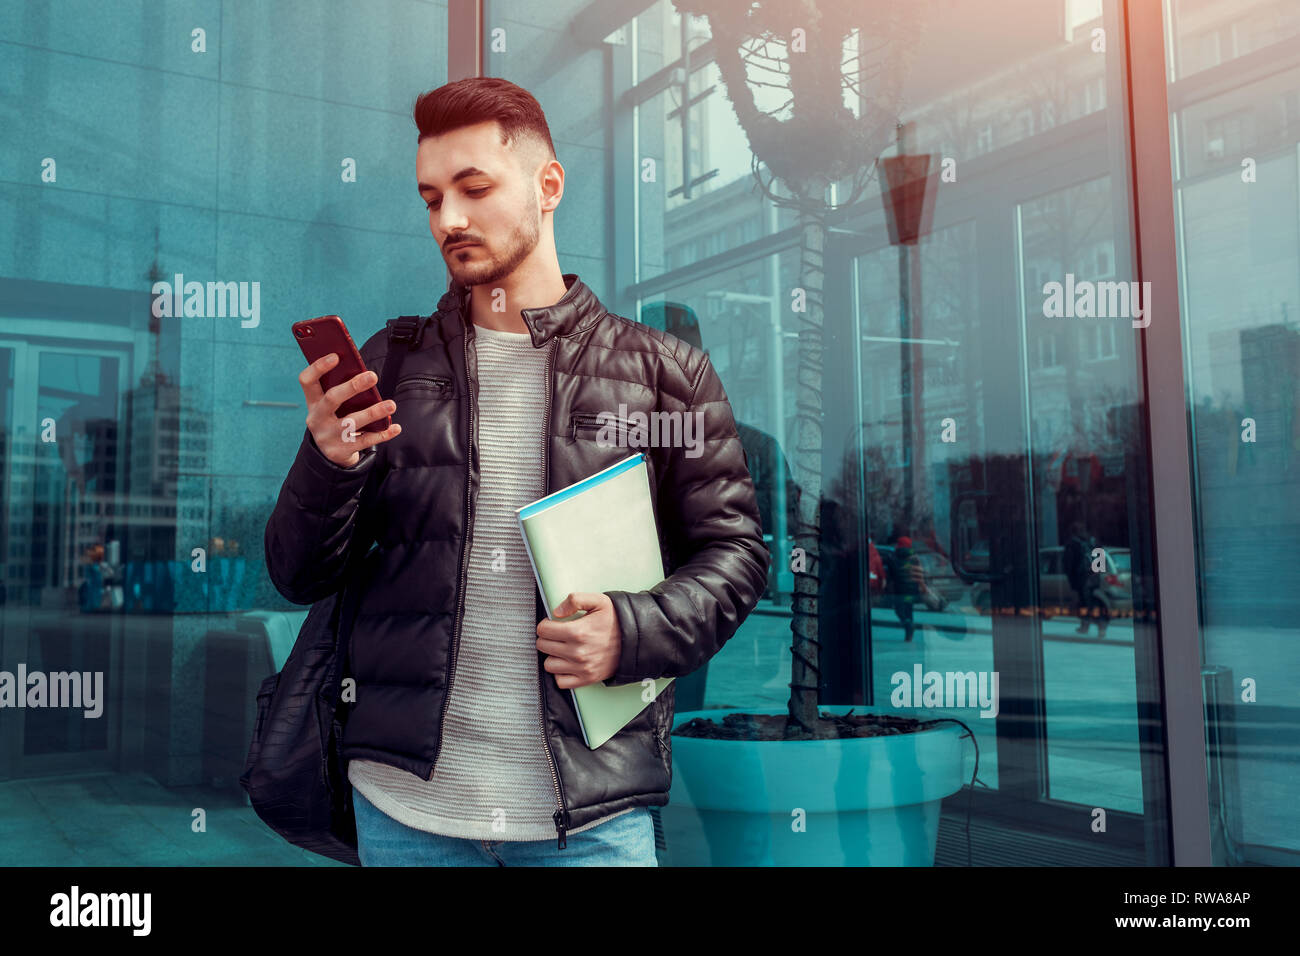 Confident arabian student using smartphone outside. Serious guy looks at phone in front of modern building after classes. Man holds copybooks. Educati - Stock Image